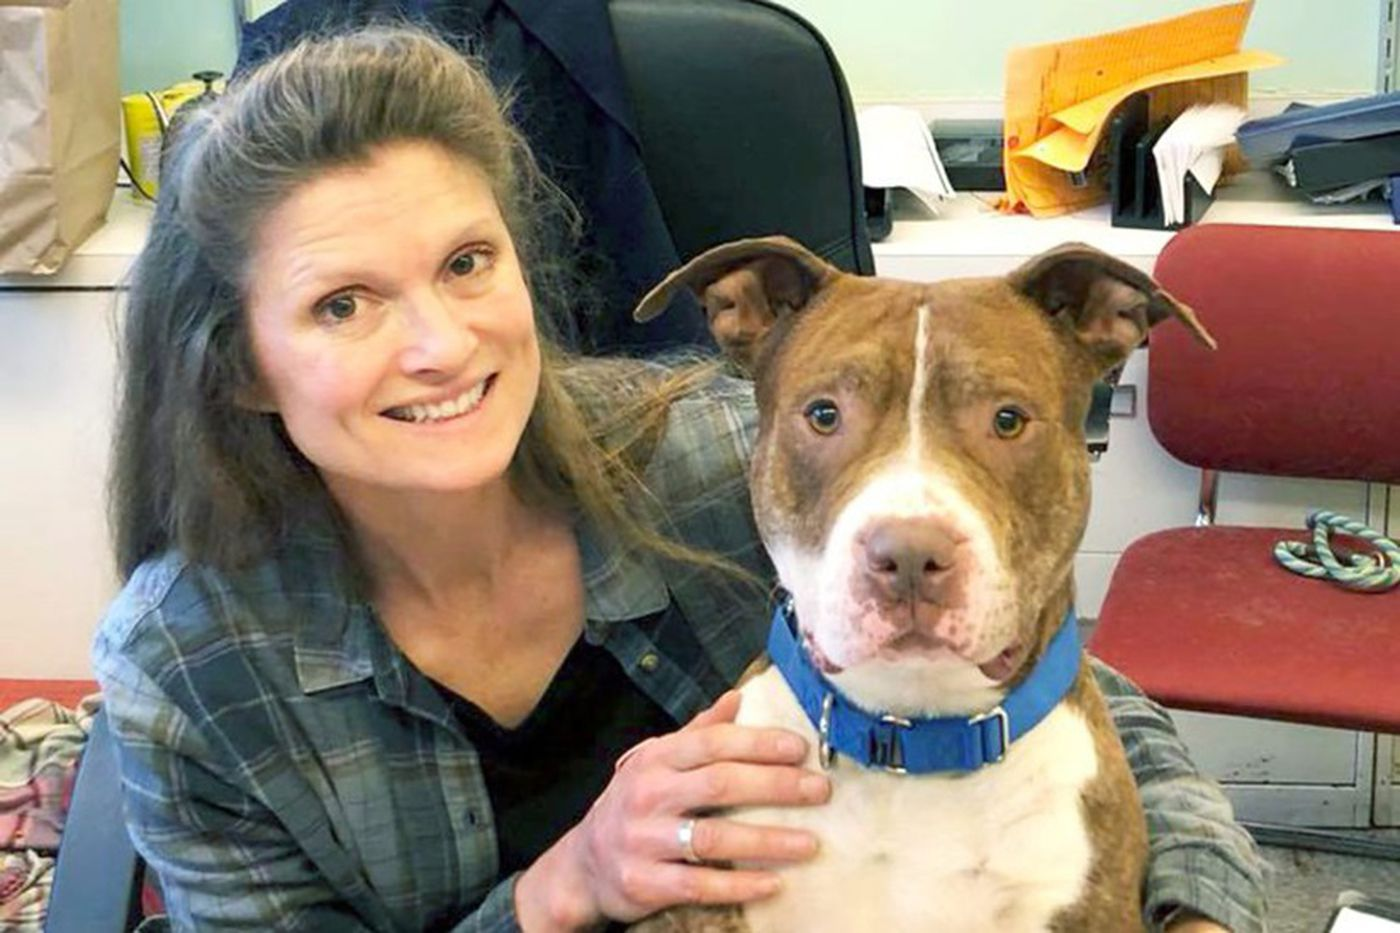 Philly's new animal shelter leader was fired from her last job | Stu Bykofsky